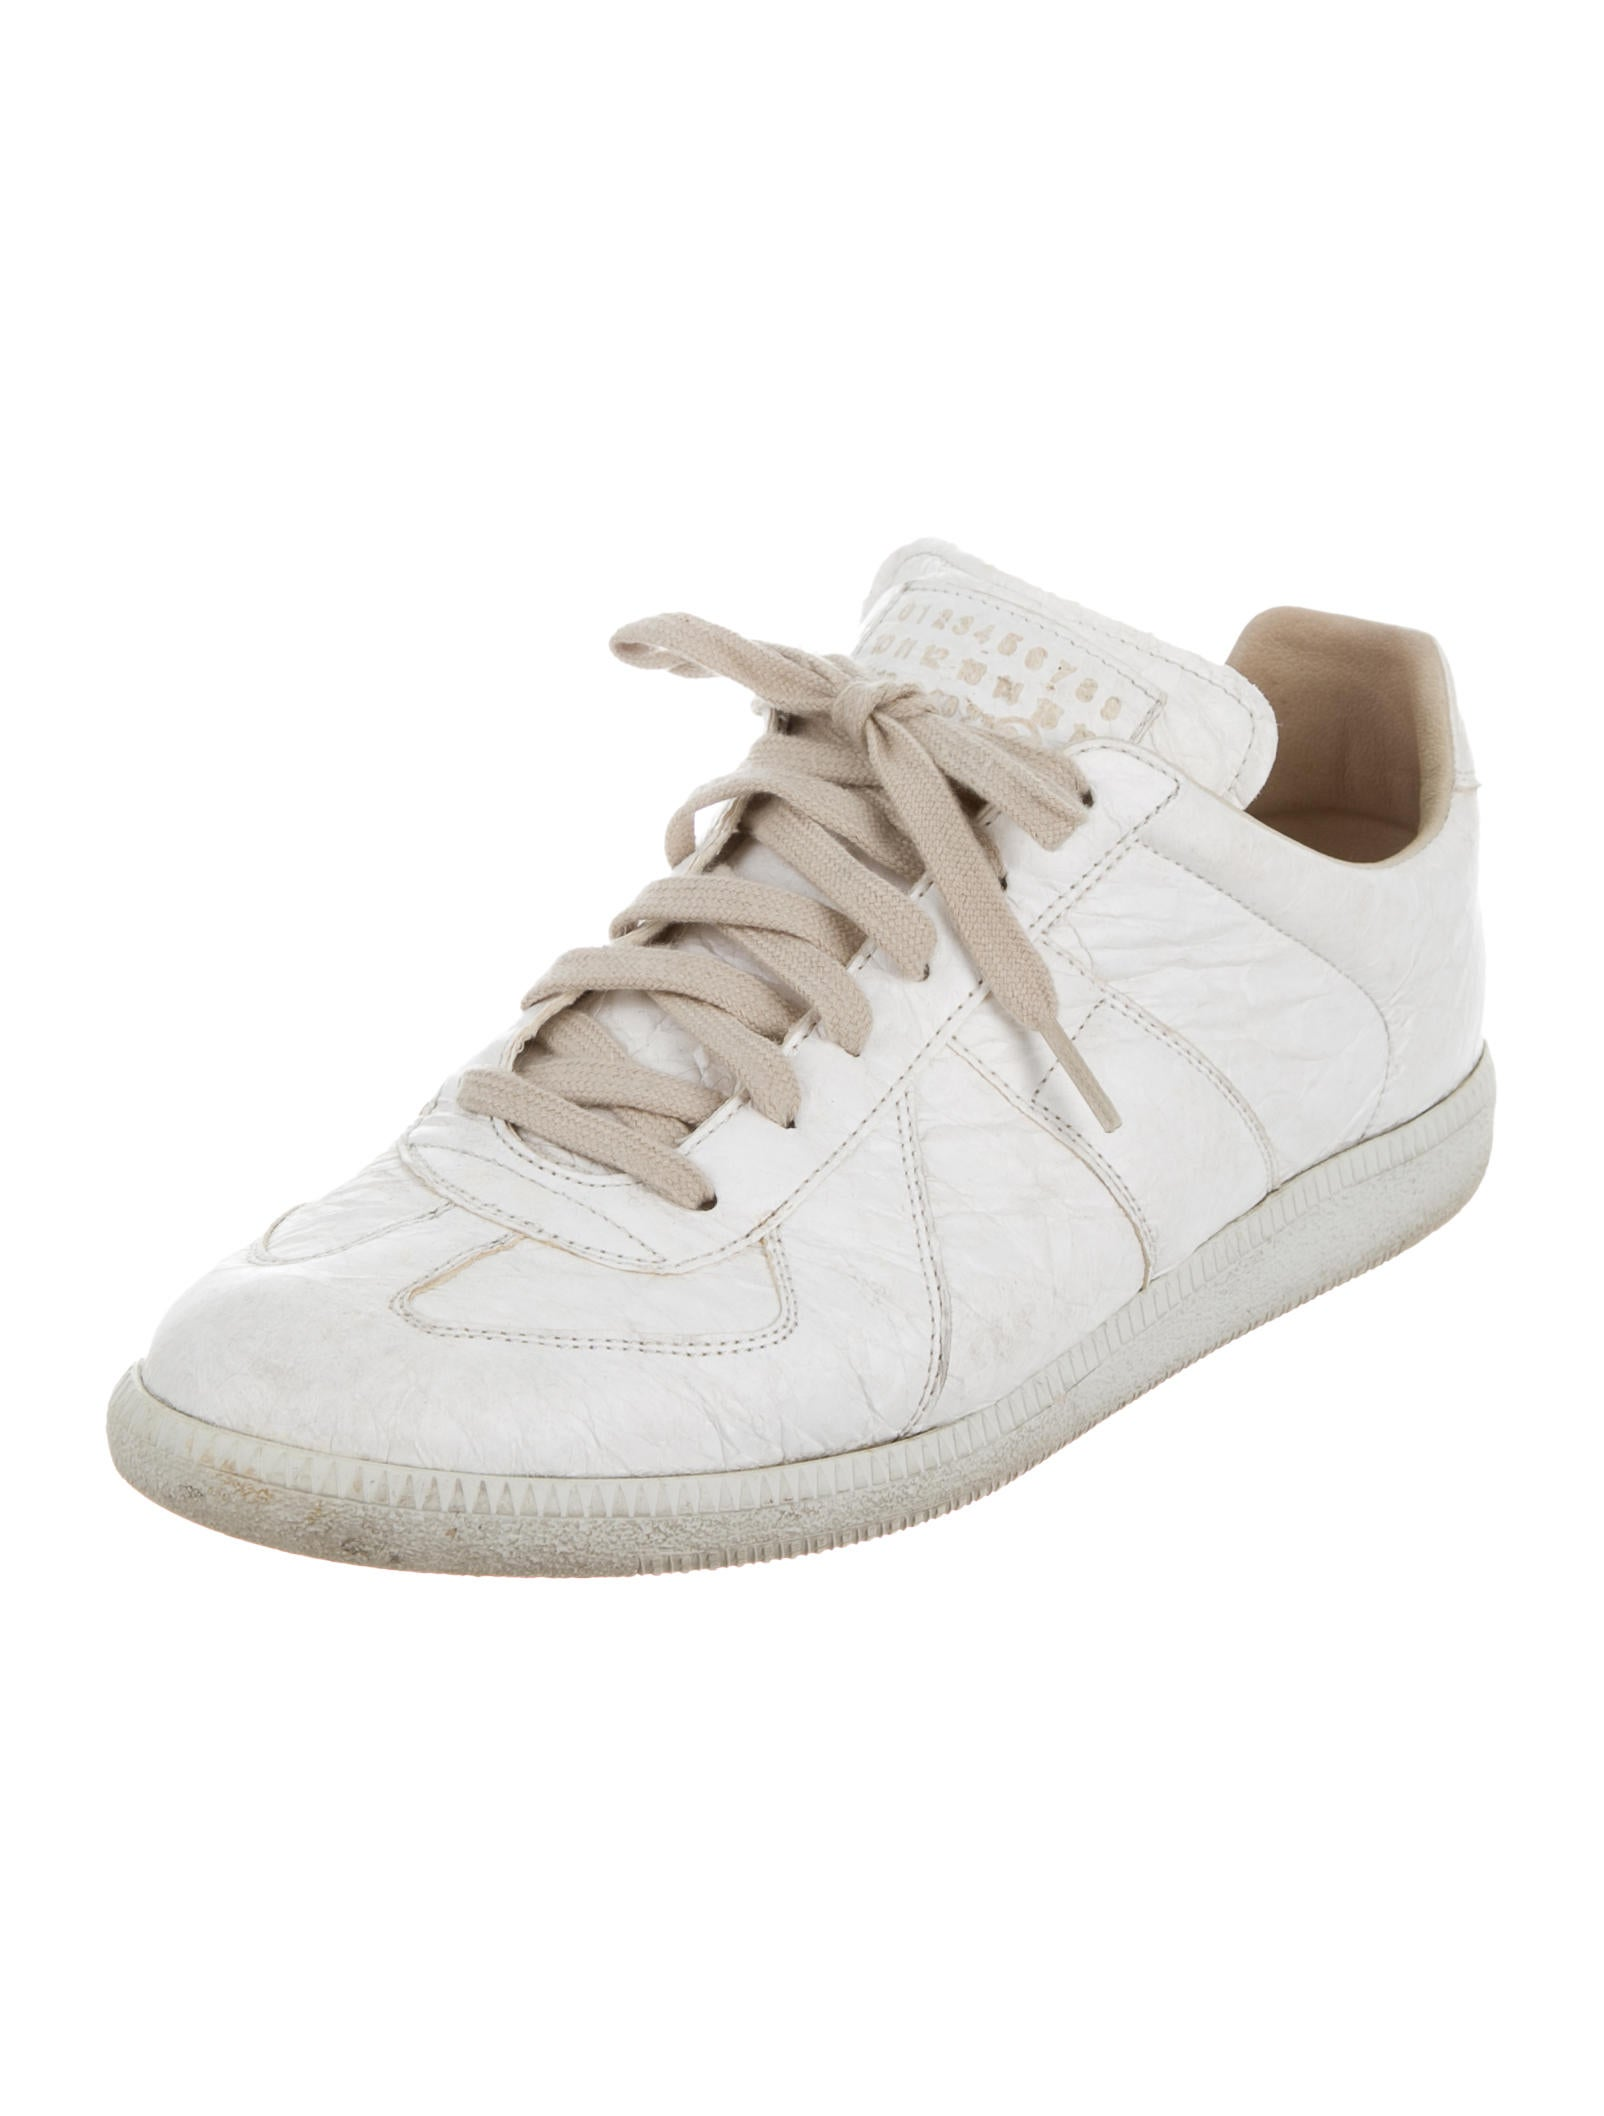 maison margiela replica low top sneakers shoes mai29674 the realreal. Black Bedroom Furniture Sets. Home Design Ideas